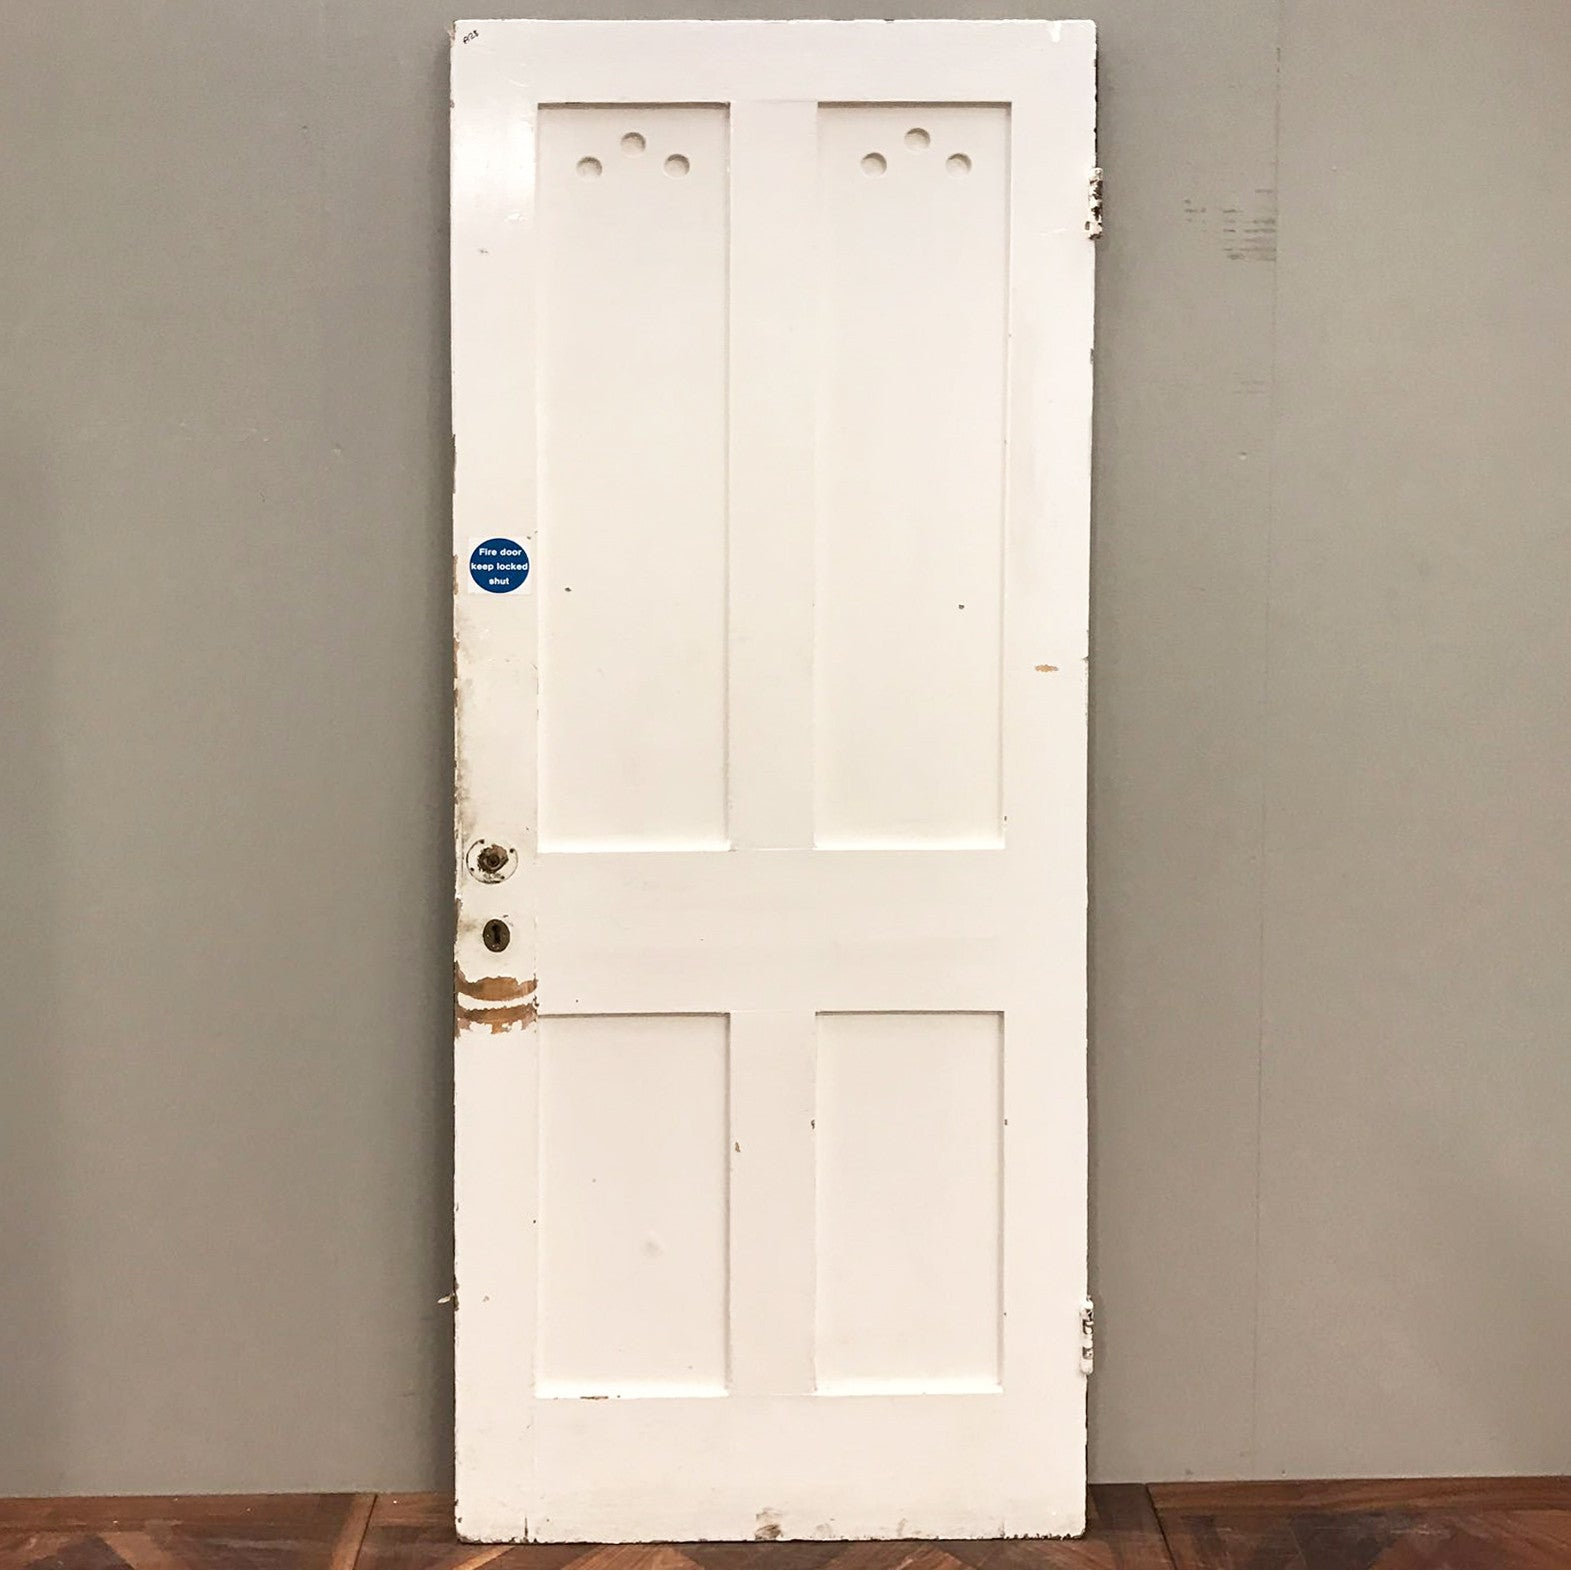 Reclaimed Victorian Four Panel Door - 206cm x 80cm x 4.5cm - architectural-forum